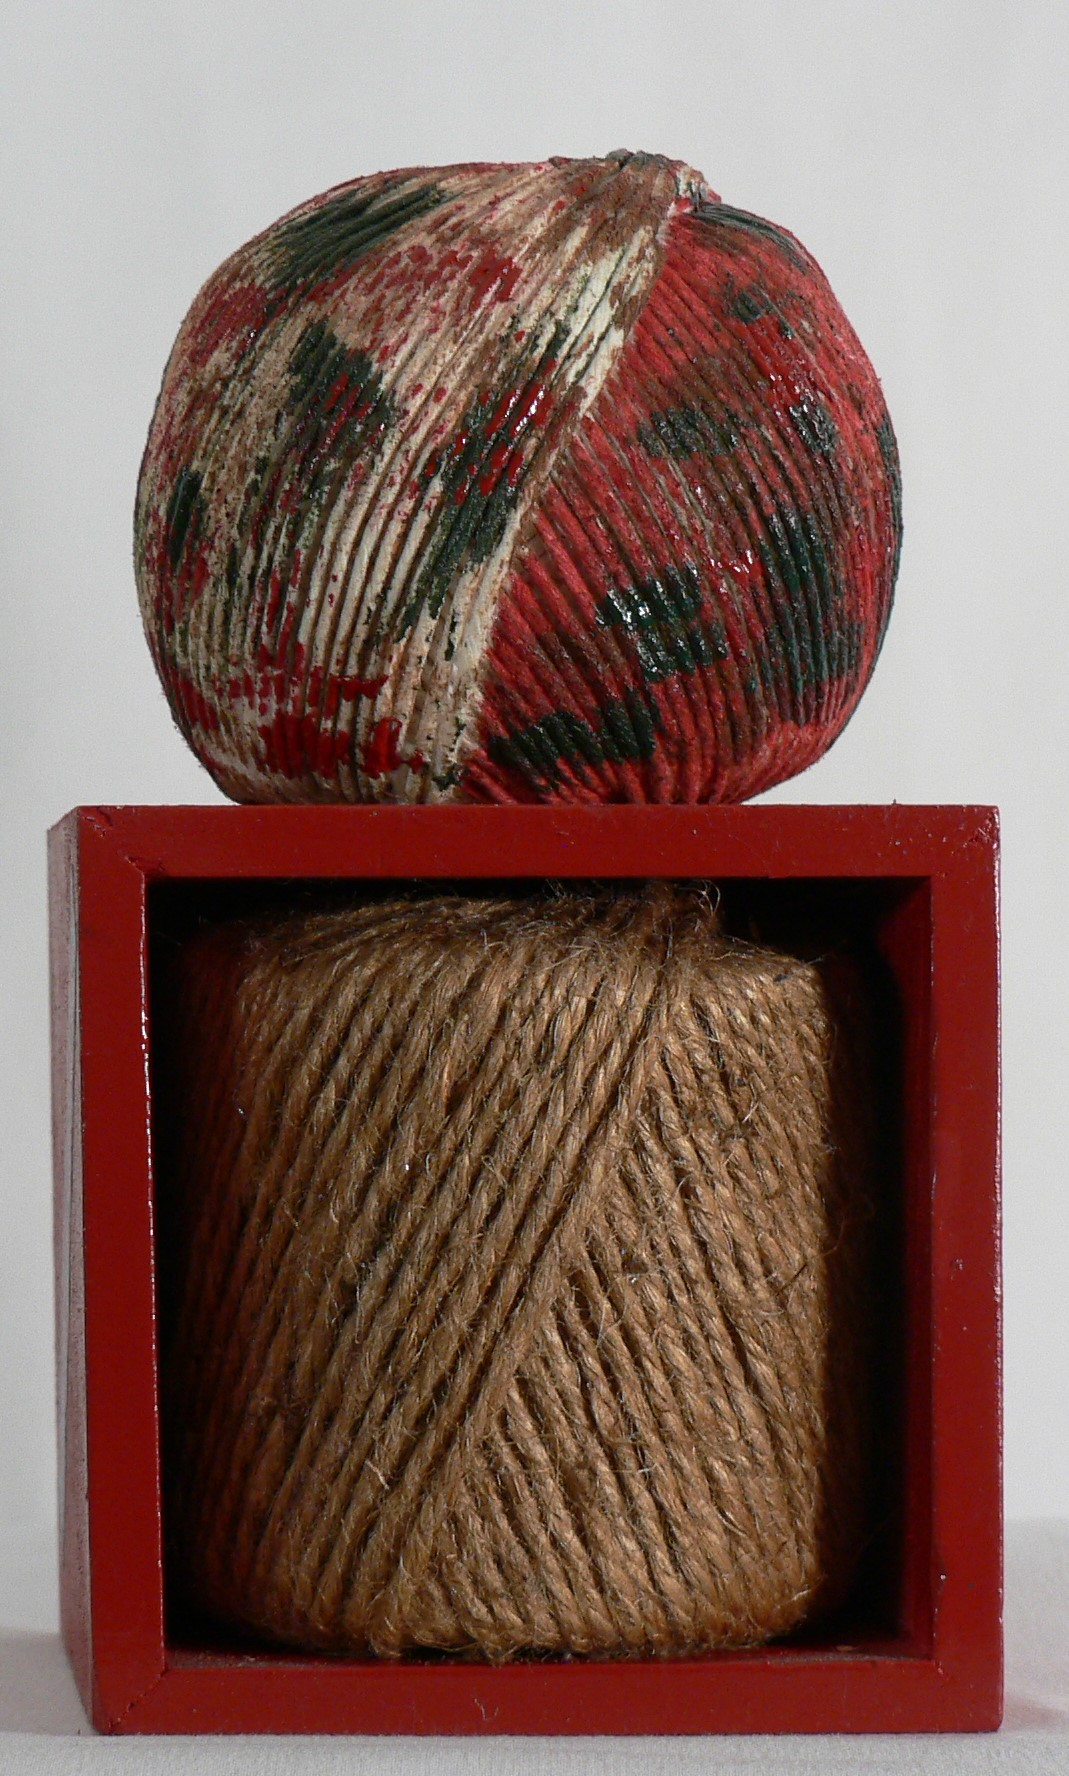 "String Theory - ""I've cried over string arrangements."" -- Janelle Manae, American singerMaterials: Balls of twine; wood box; acrylic paint; paper. Dimensions: 6.5""H x 3.5""W x 3.5""D. Created: March 2018.Status: For Sale ($150)."